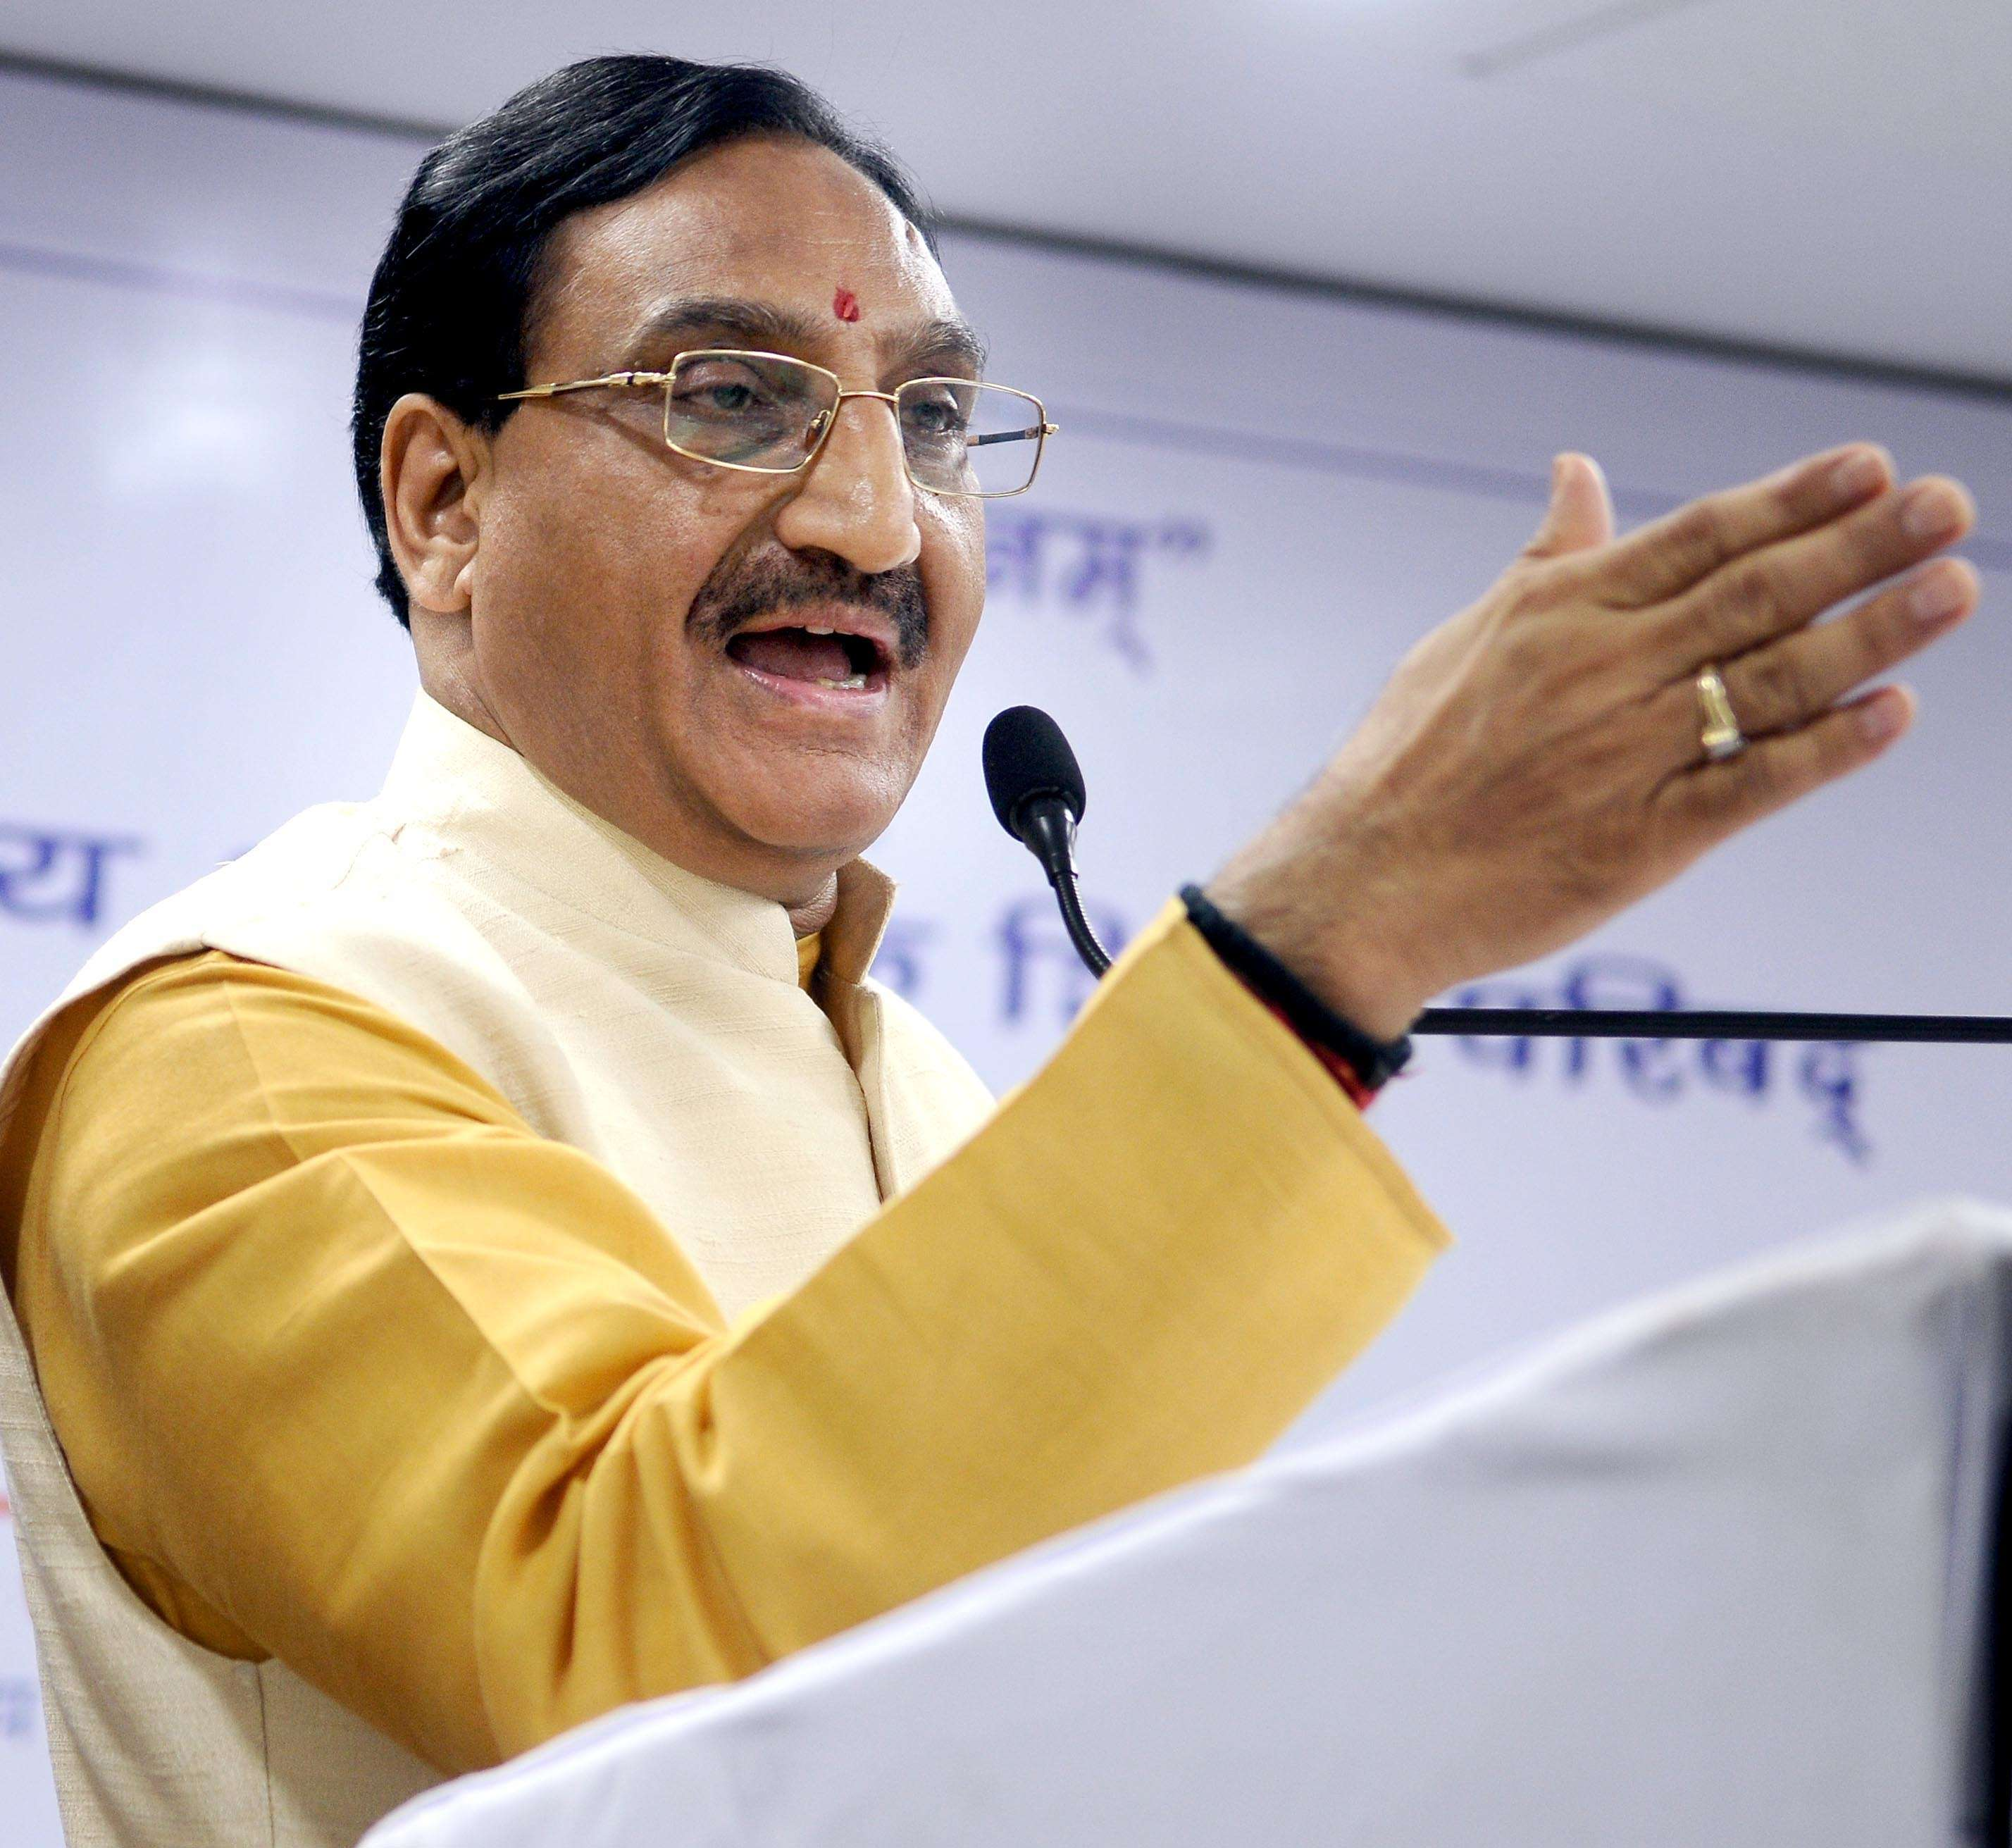 HRD minister to launch water conservation awareness drive in school